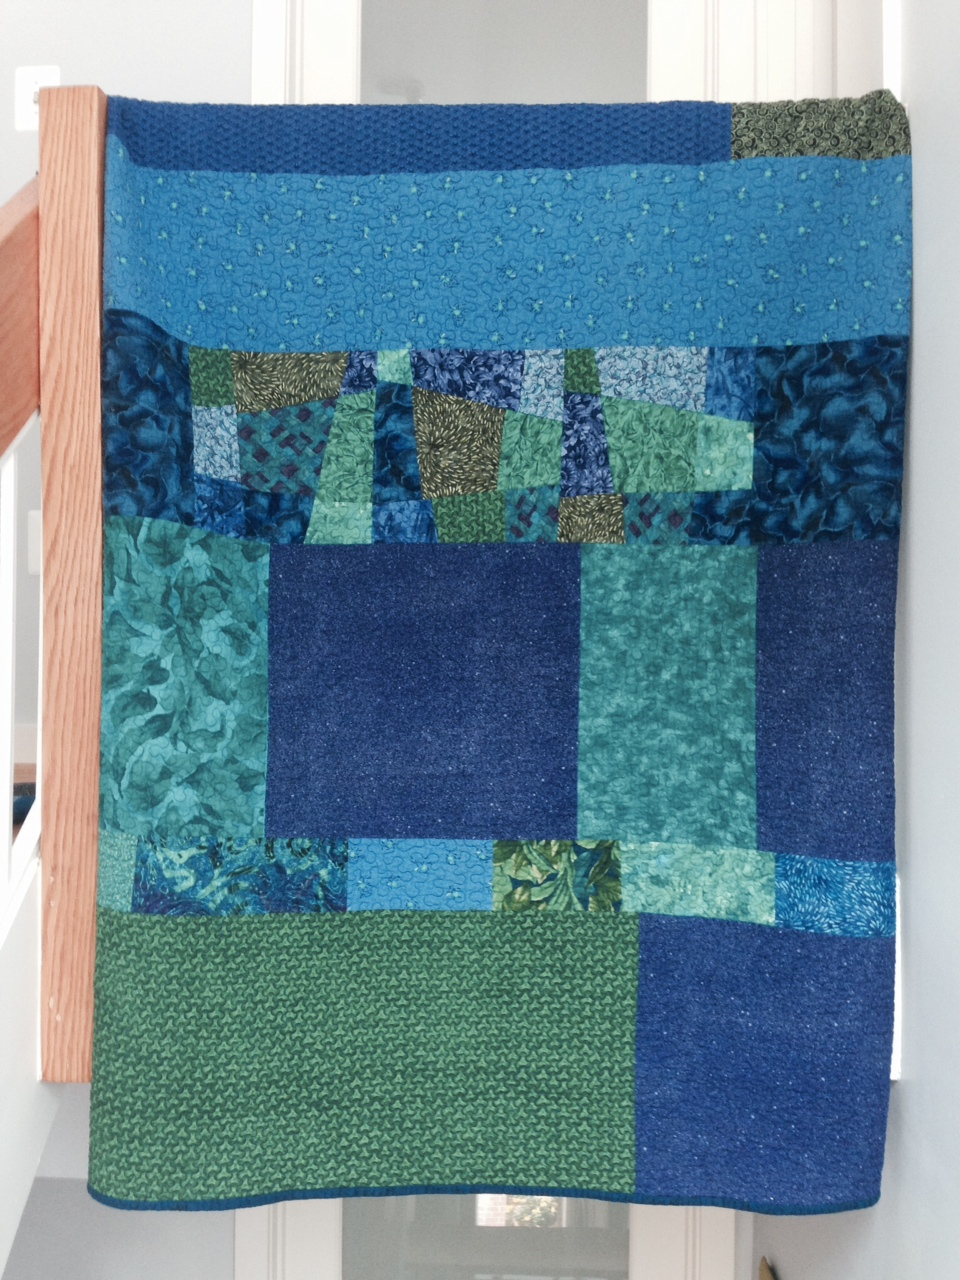 Quilt Back with Composition in Blues